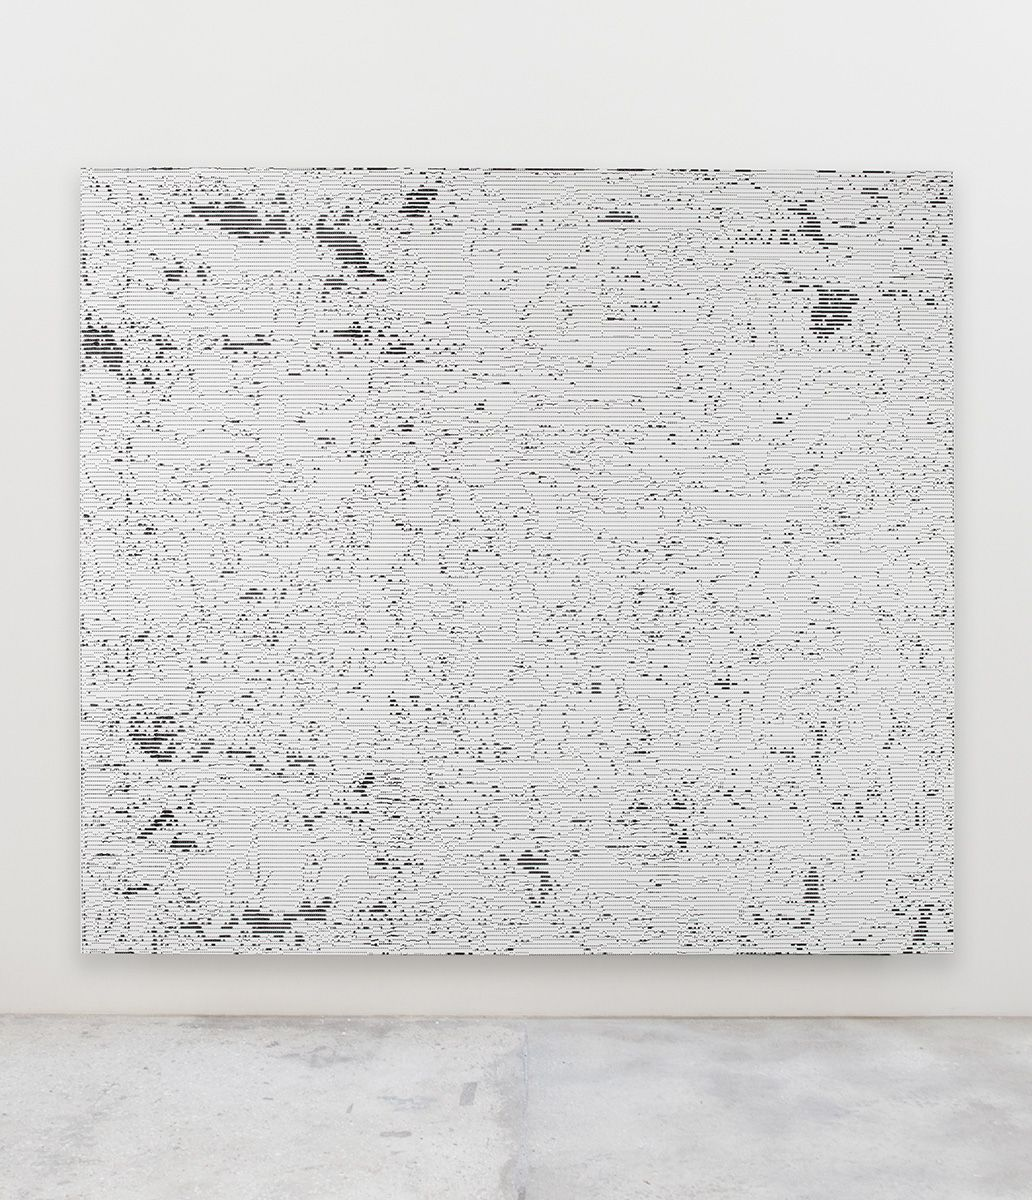 Jacqueline Humphries  i\Ω.., 2017  Oil on linen  114 x 127 inches (289.6 x 322.6 cm)